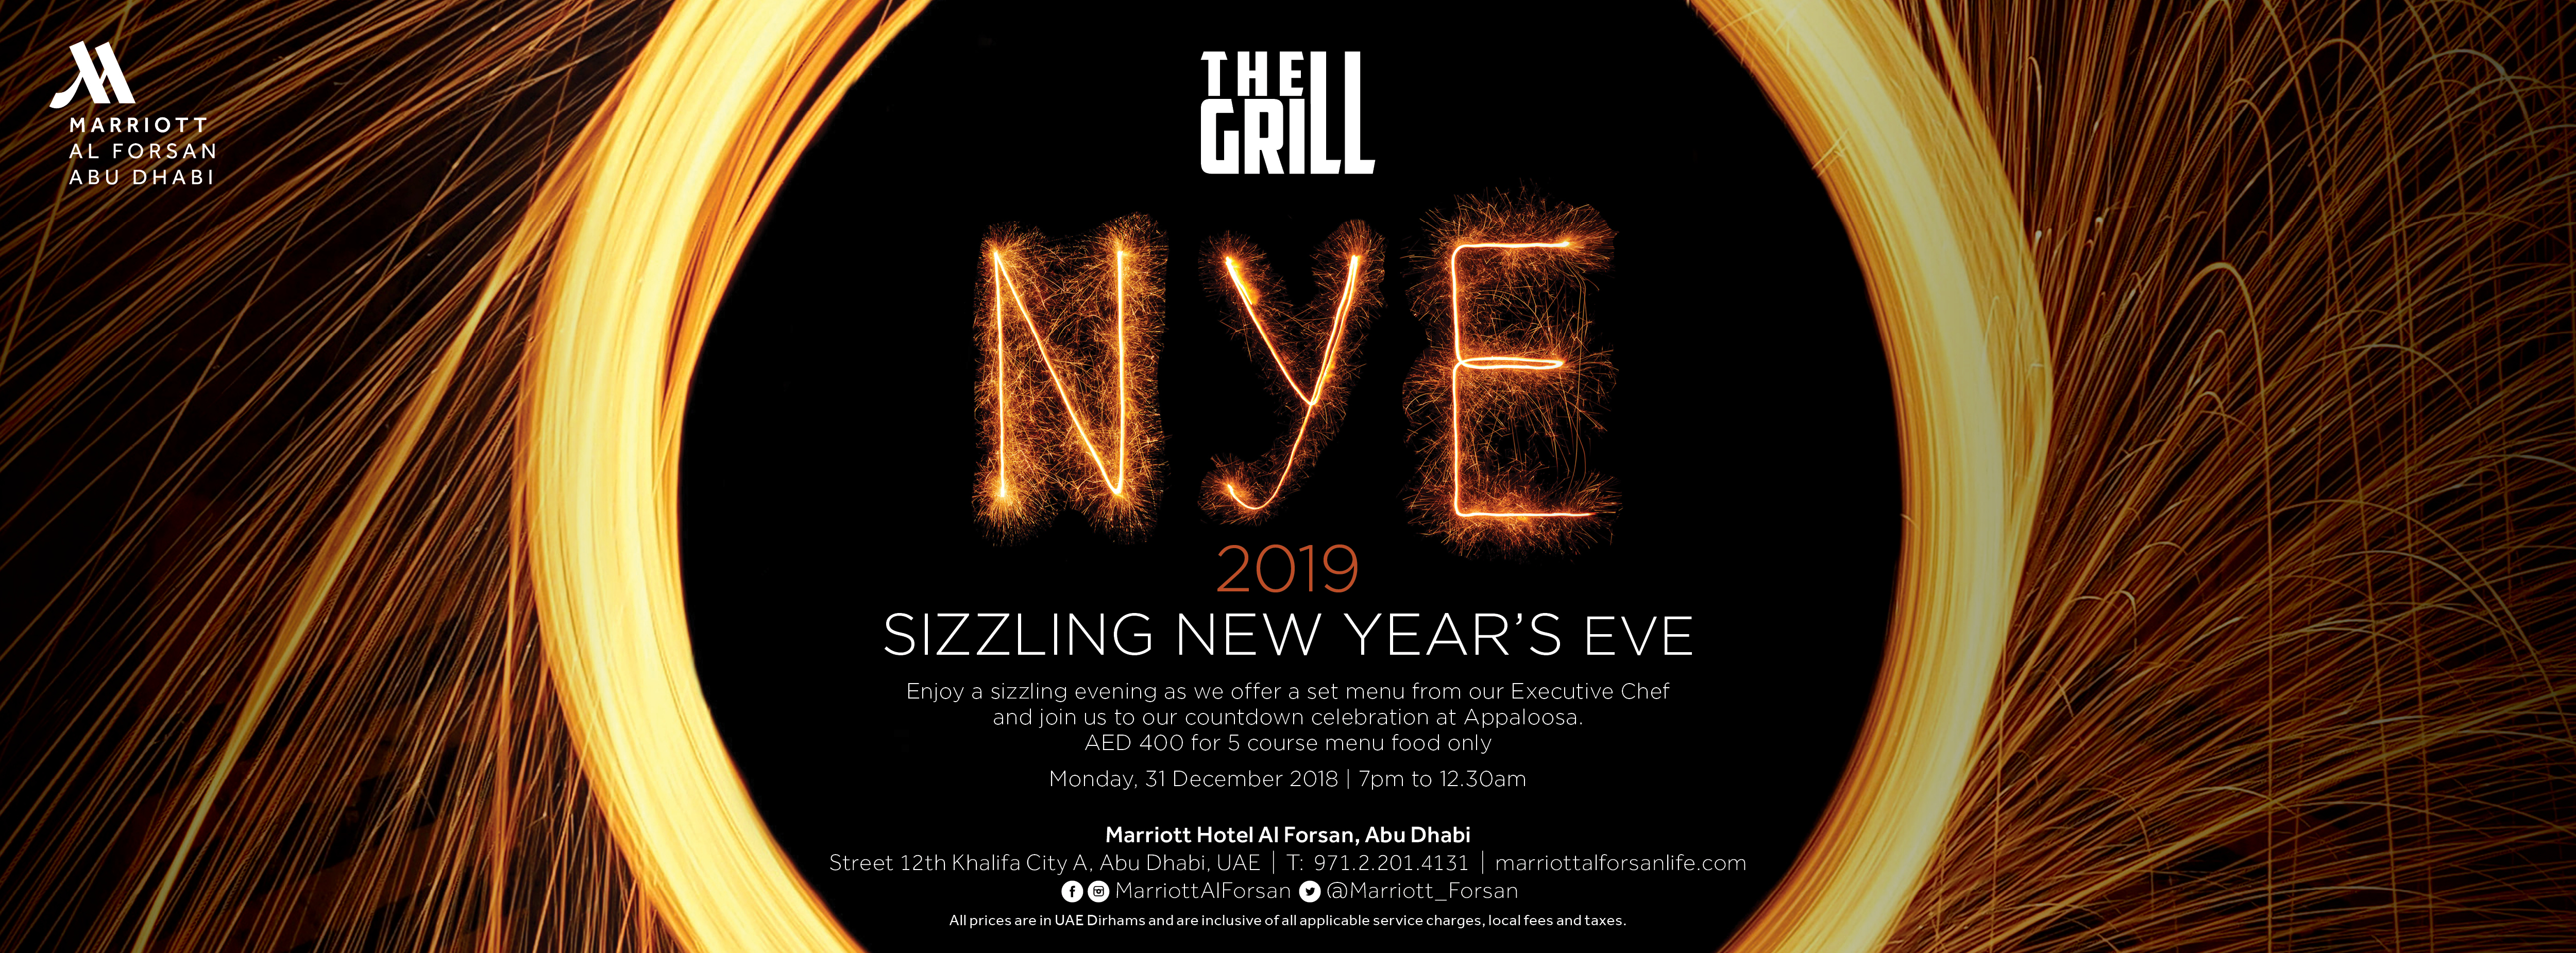 NYE @ The Grill